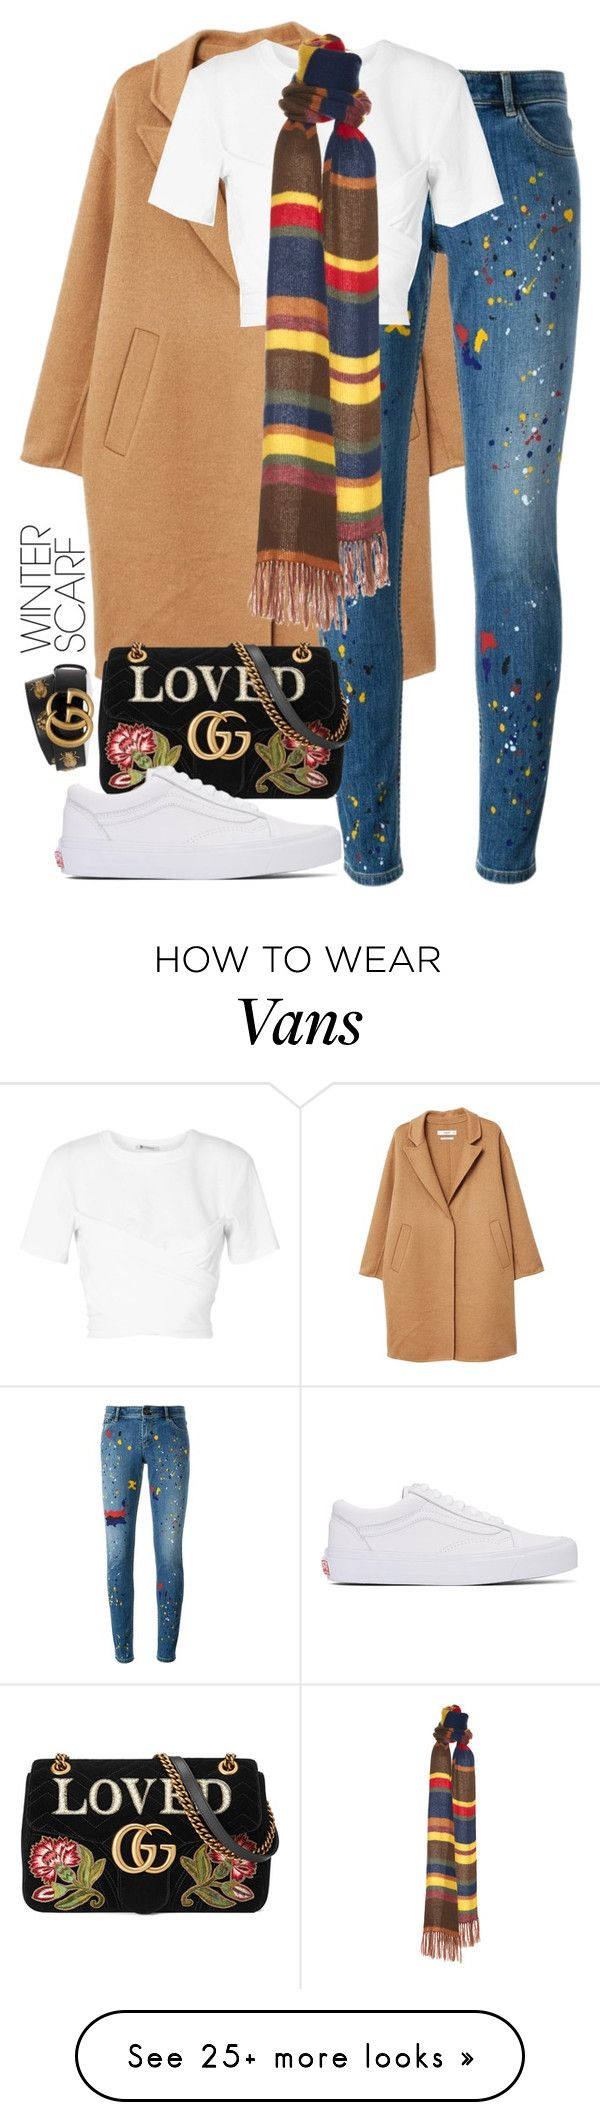 """""""Smile"""" by hipster-bohemian on Polyvore featuring MANGO, Alice + Olivia, T By Alexander Wang, Gucci, Vans and winterscarf"""